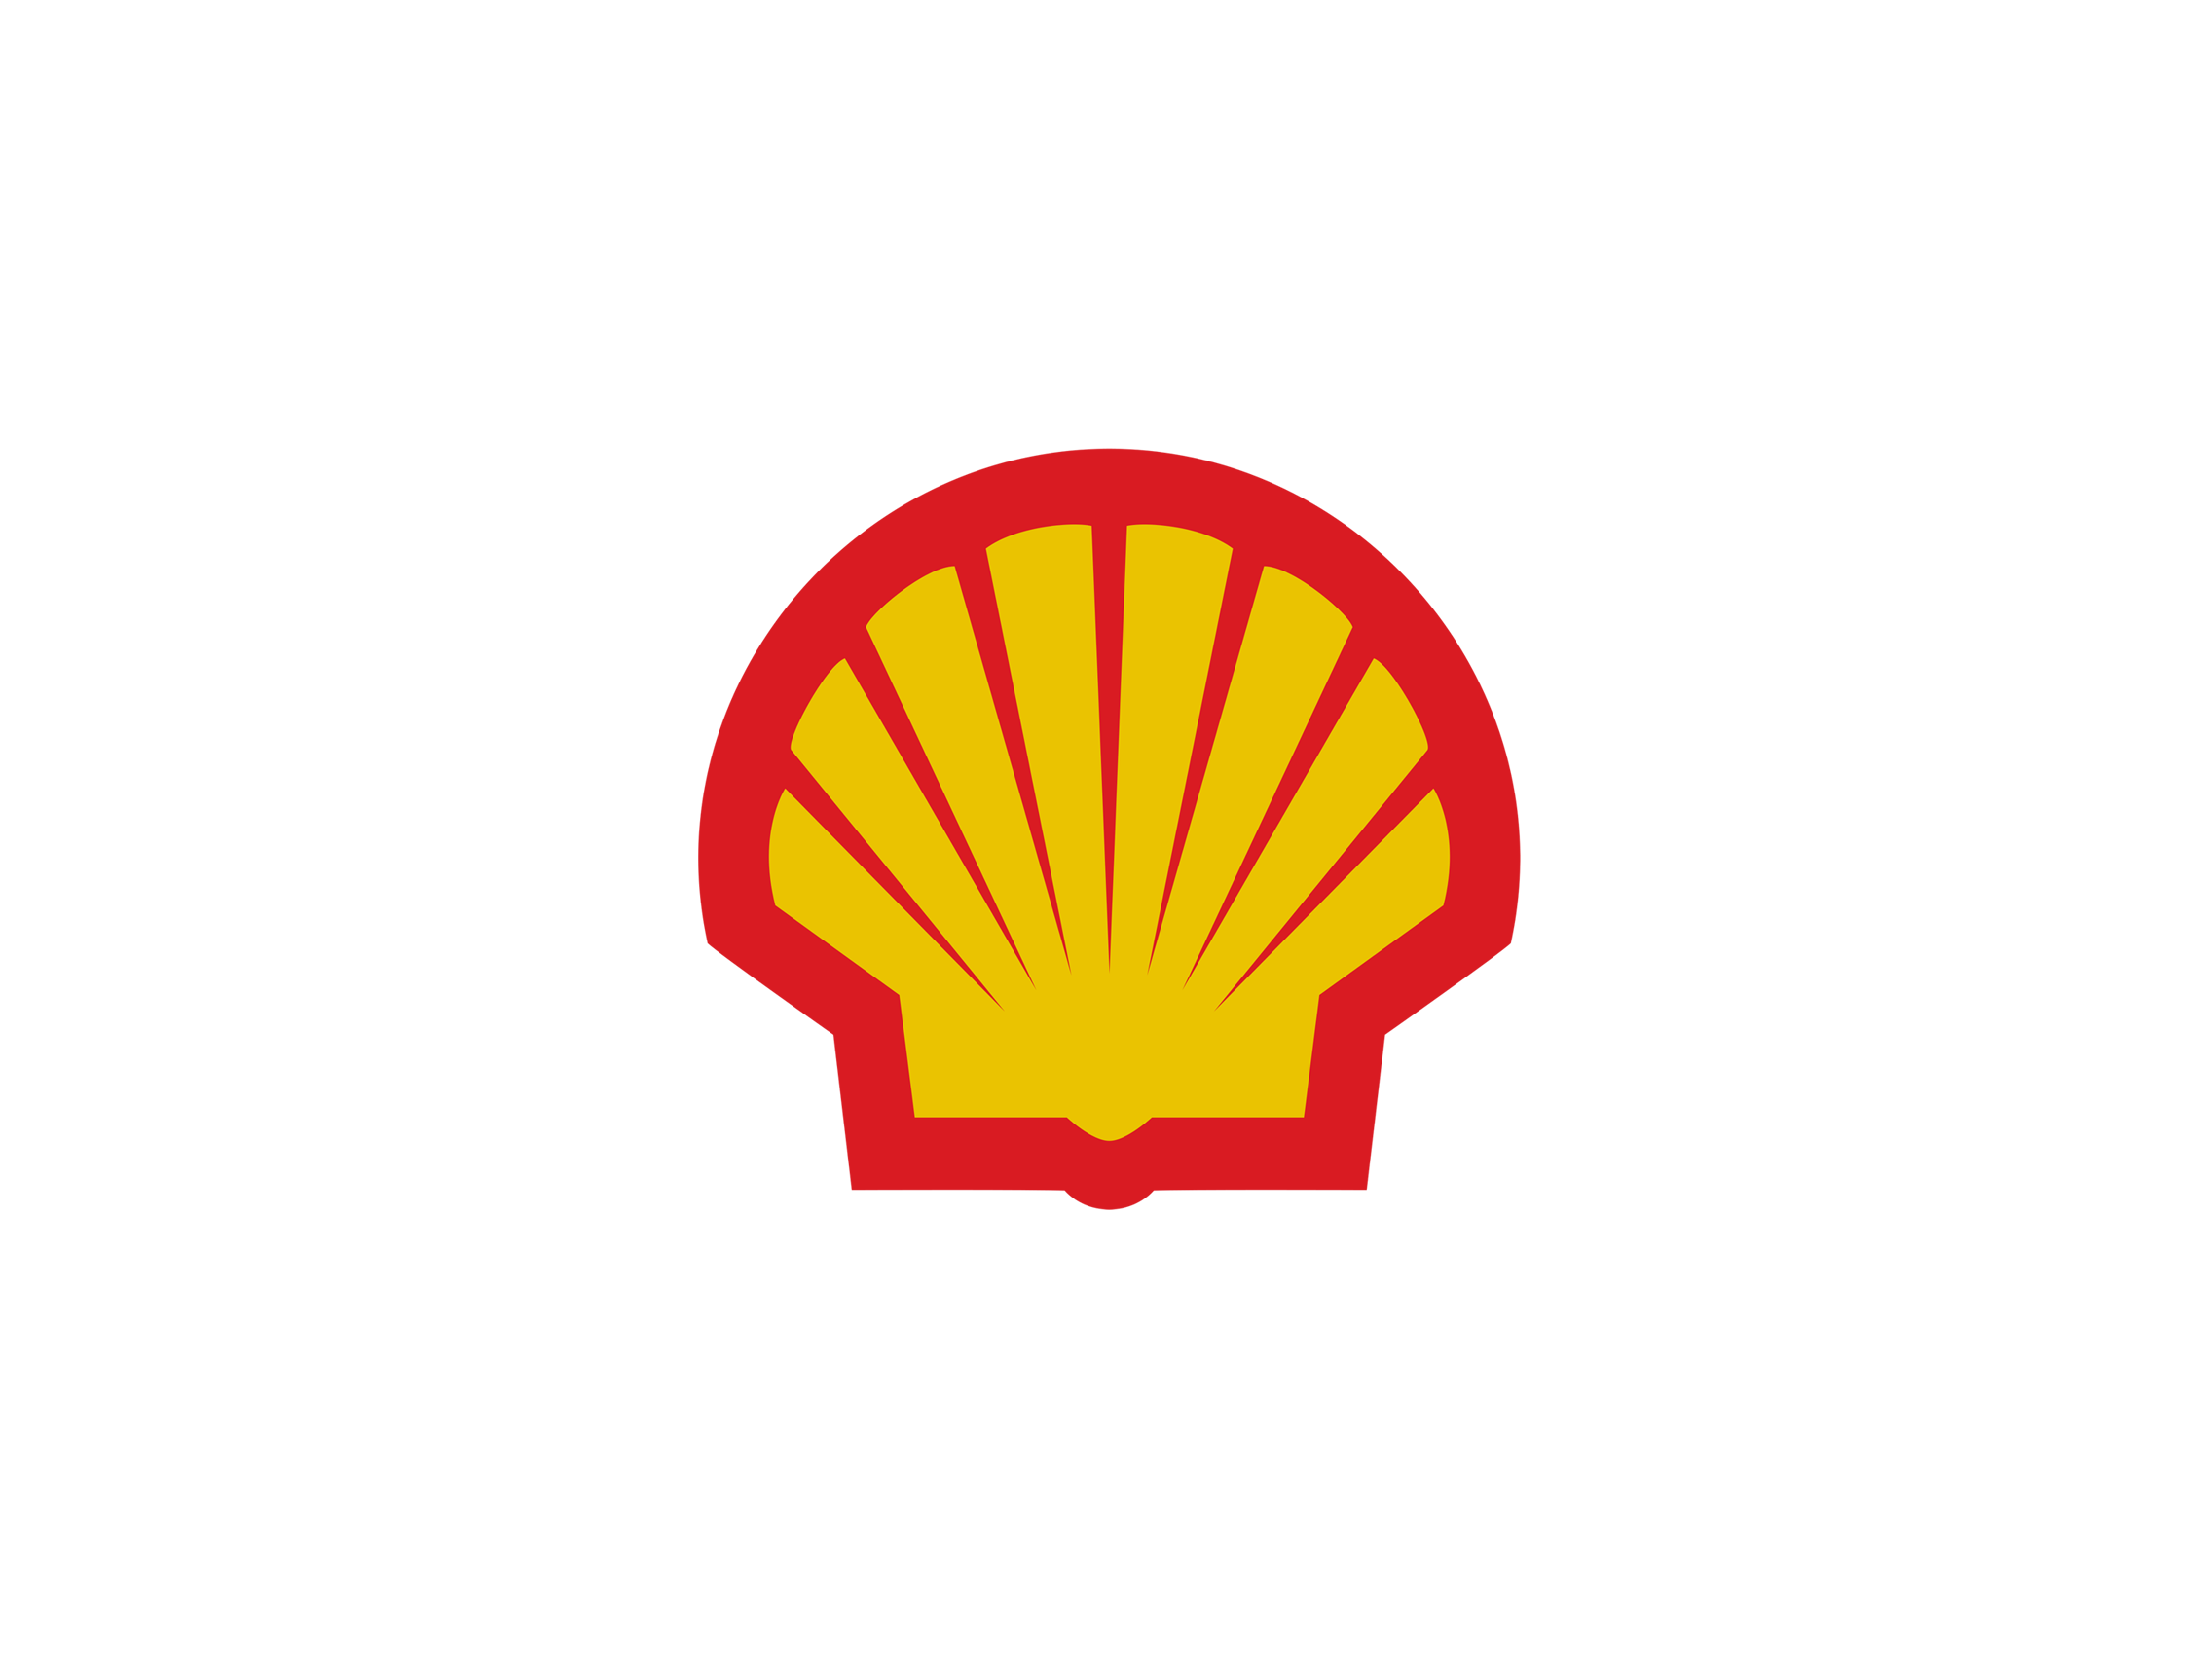 Shell lawsuit (re oil pollution in Nigeria)